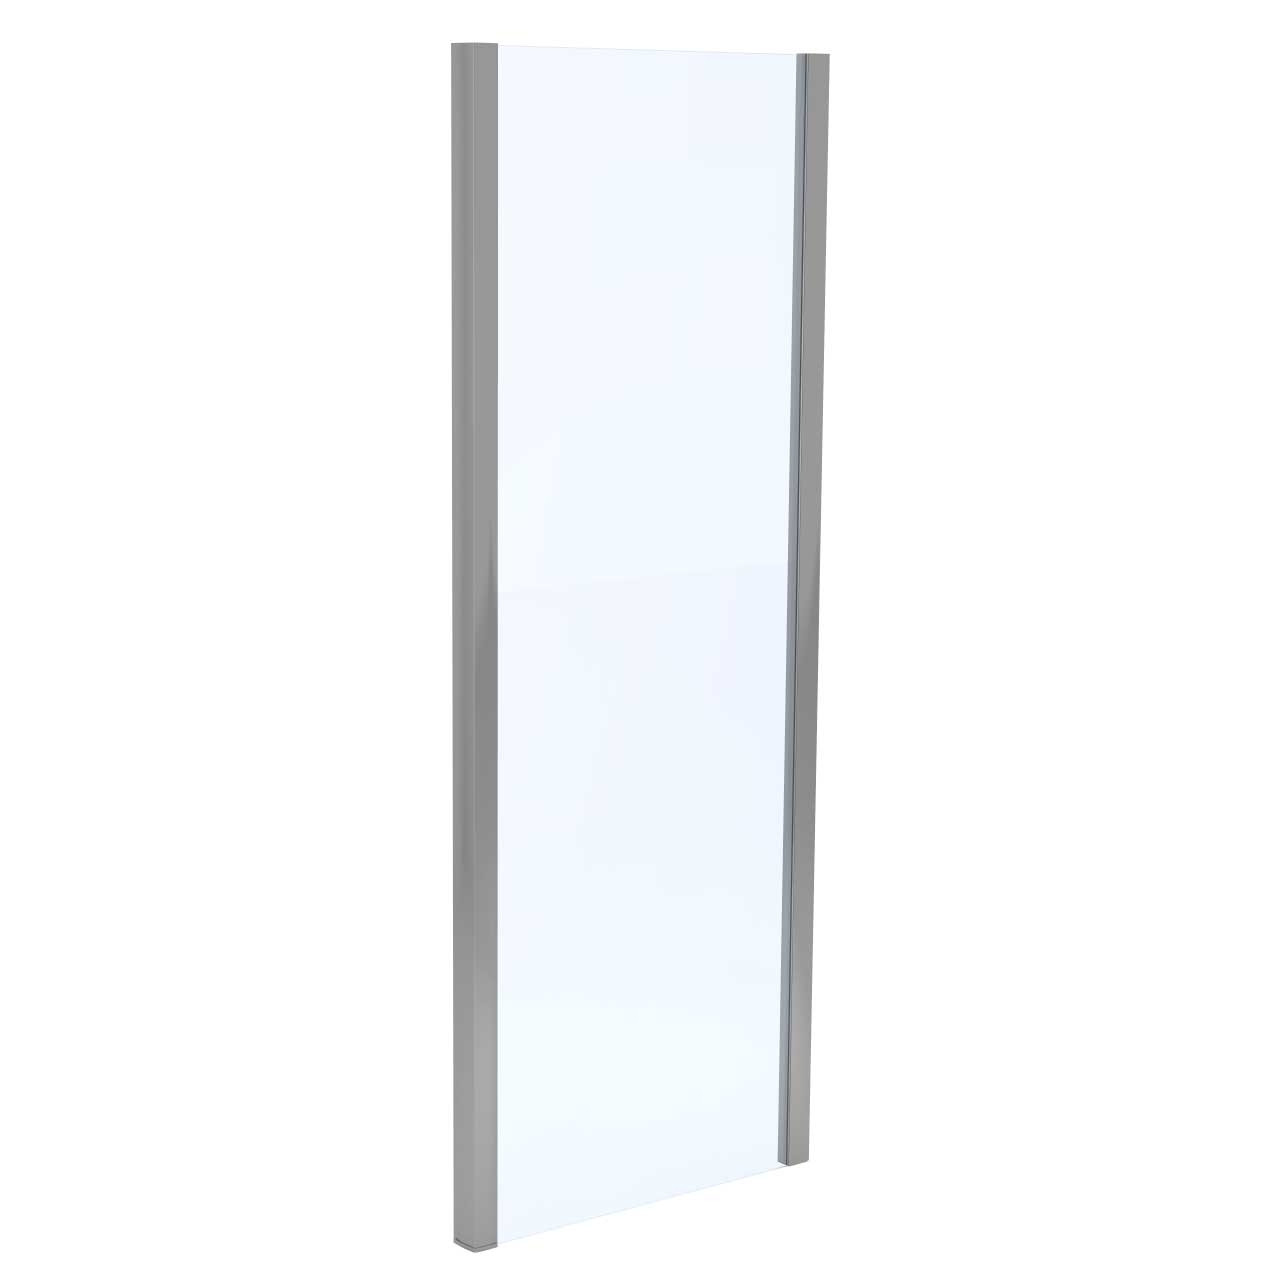 Series 6 1200 x 700 Sliding Door Enclosure